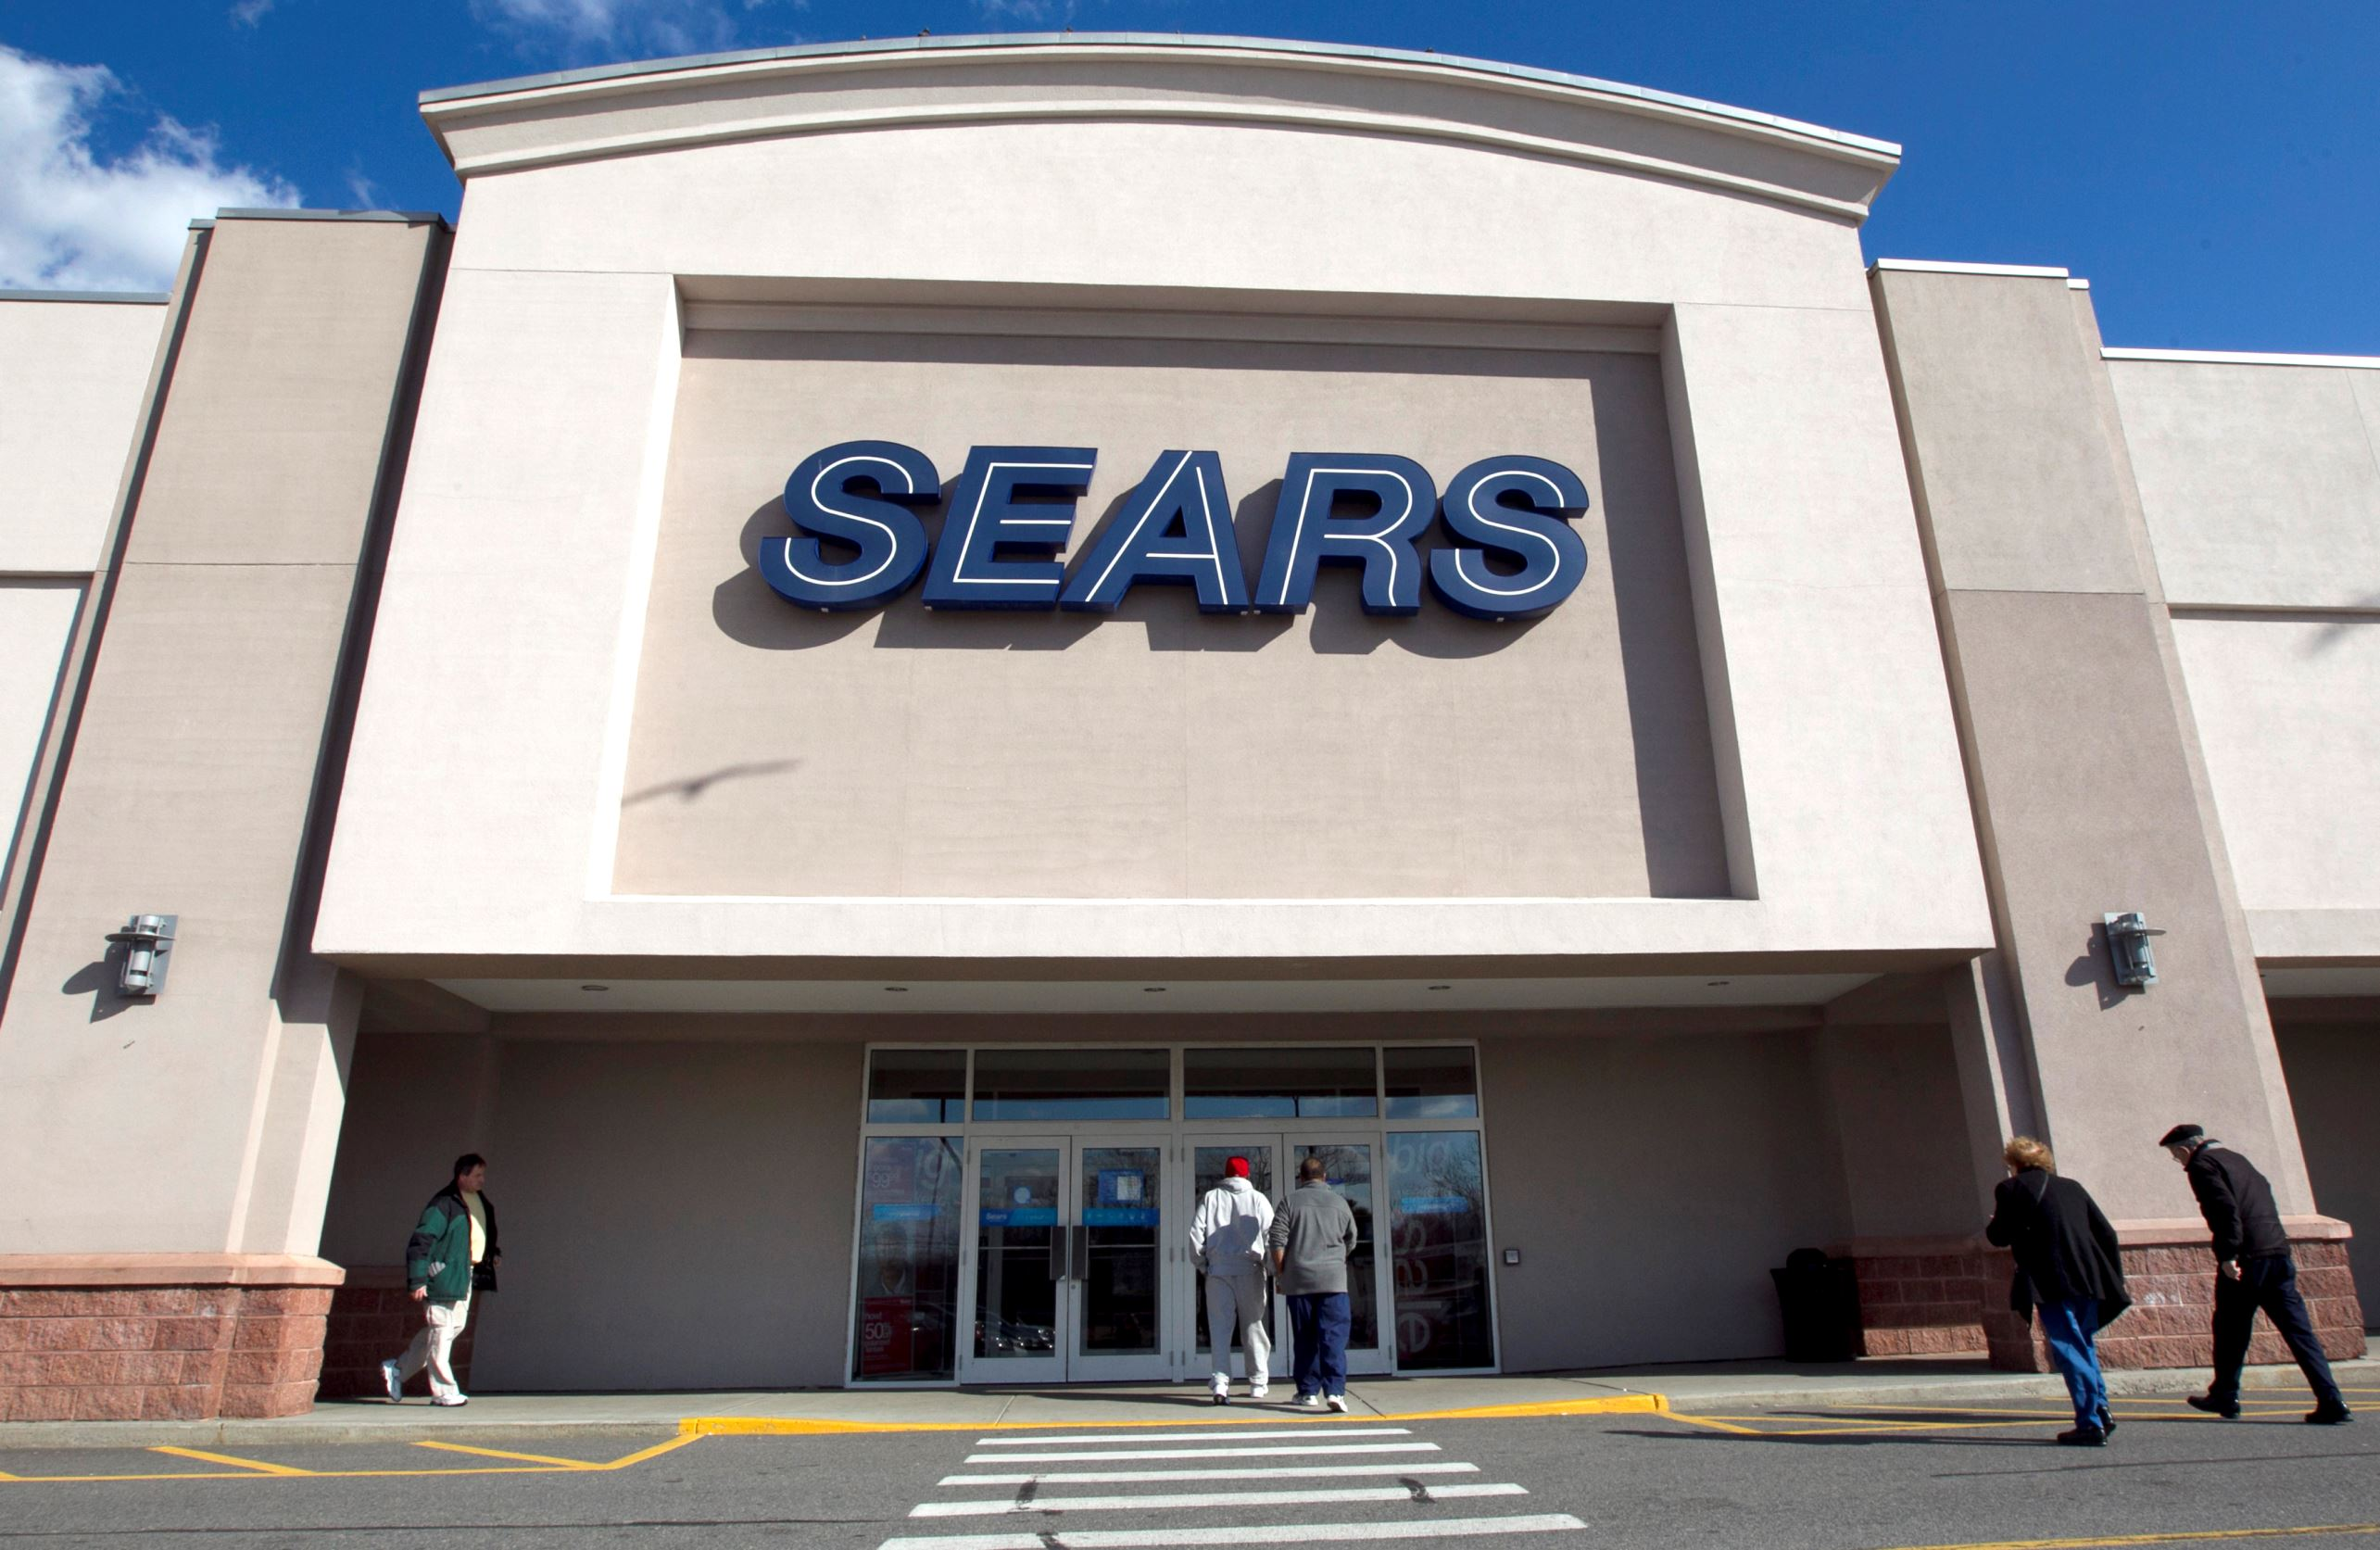 FILE - In this Feb. 22, 2012 file photo, shoppers enter a Sears department store location in Dedham, Mass. Sears Holdings Corp. reports quarterly financial results before the market opens on Thursday, Dec. 4, 2014. (AP Photo/Steven Senne, File)